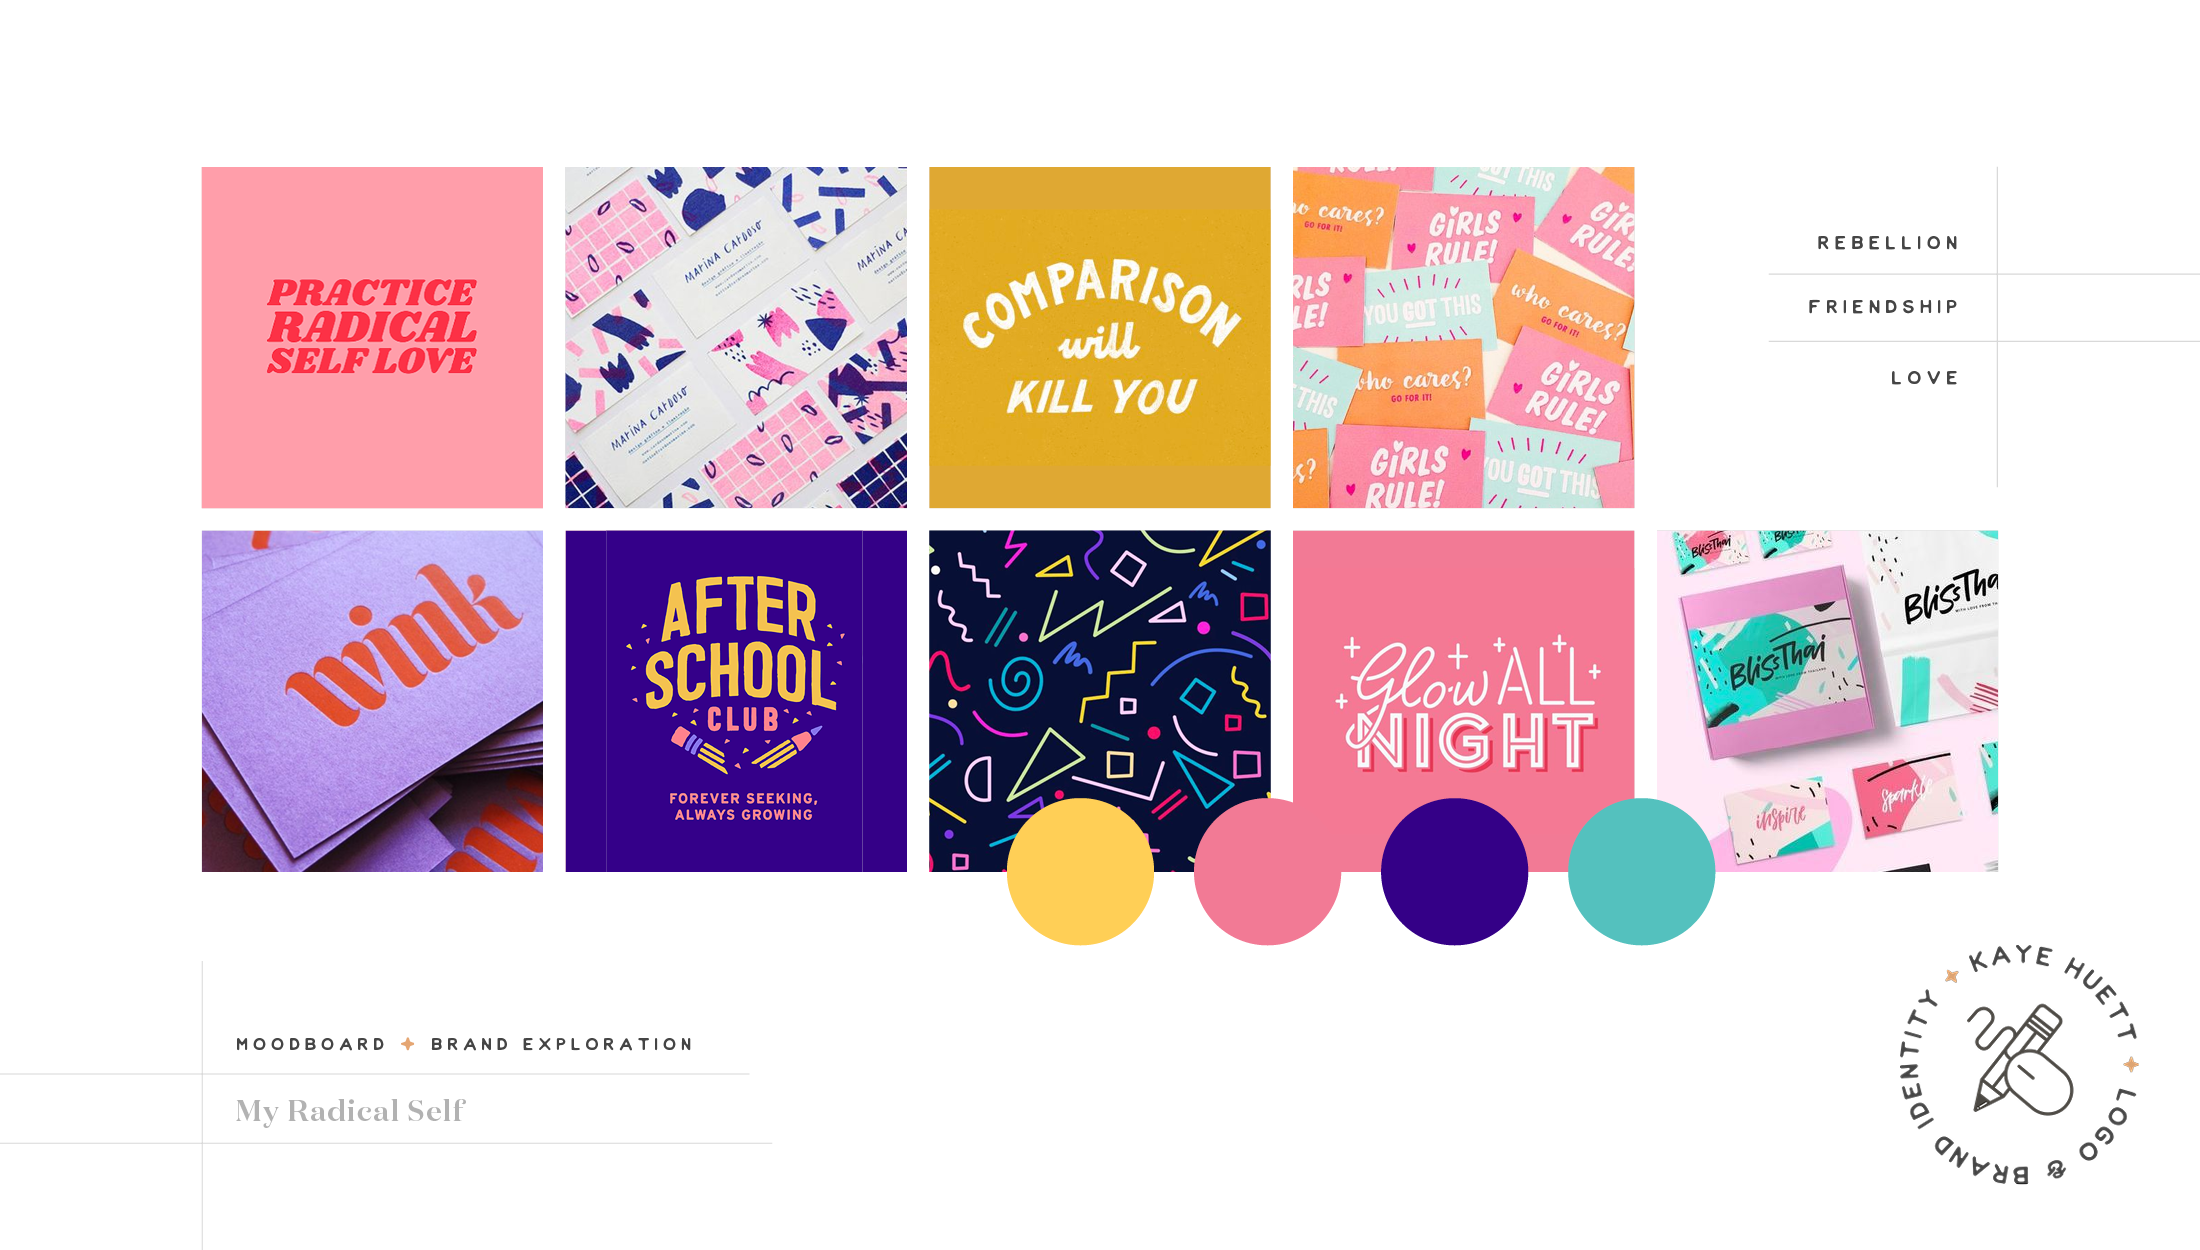 Moodboard for My Radical Self, an online community and blog for women focusing on self-love, feminism and mindfulness - designed by Wiltshire-based graphic designer, Kaye Huett